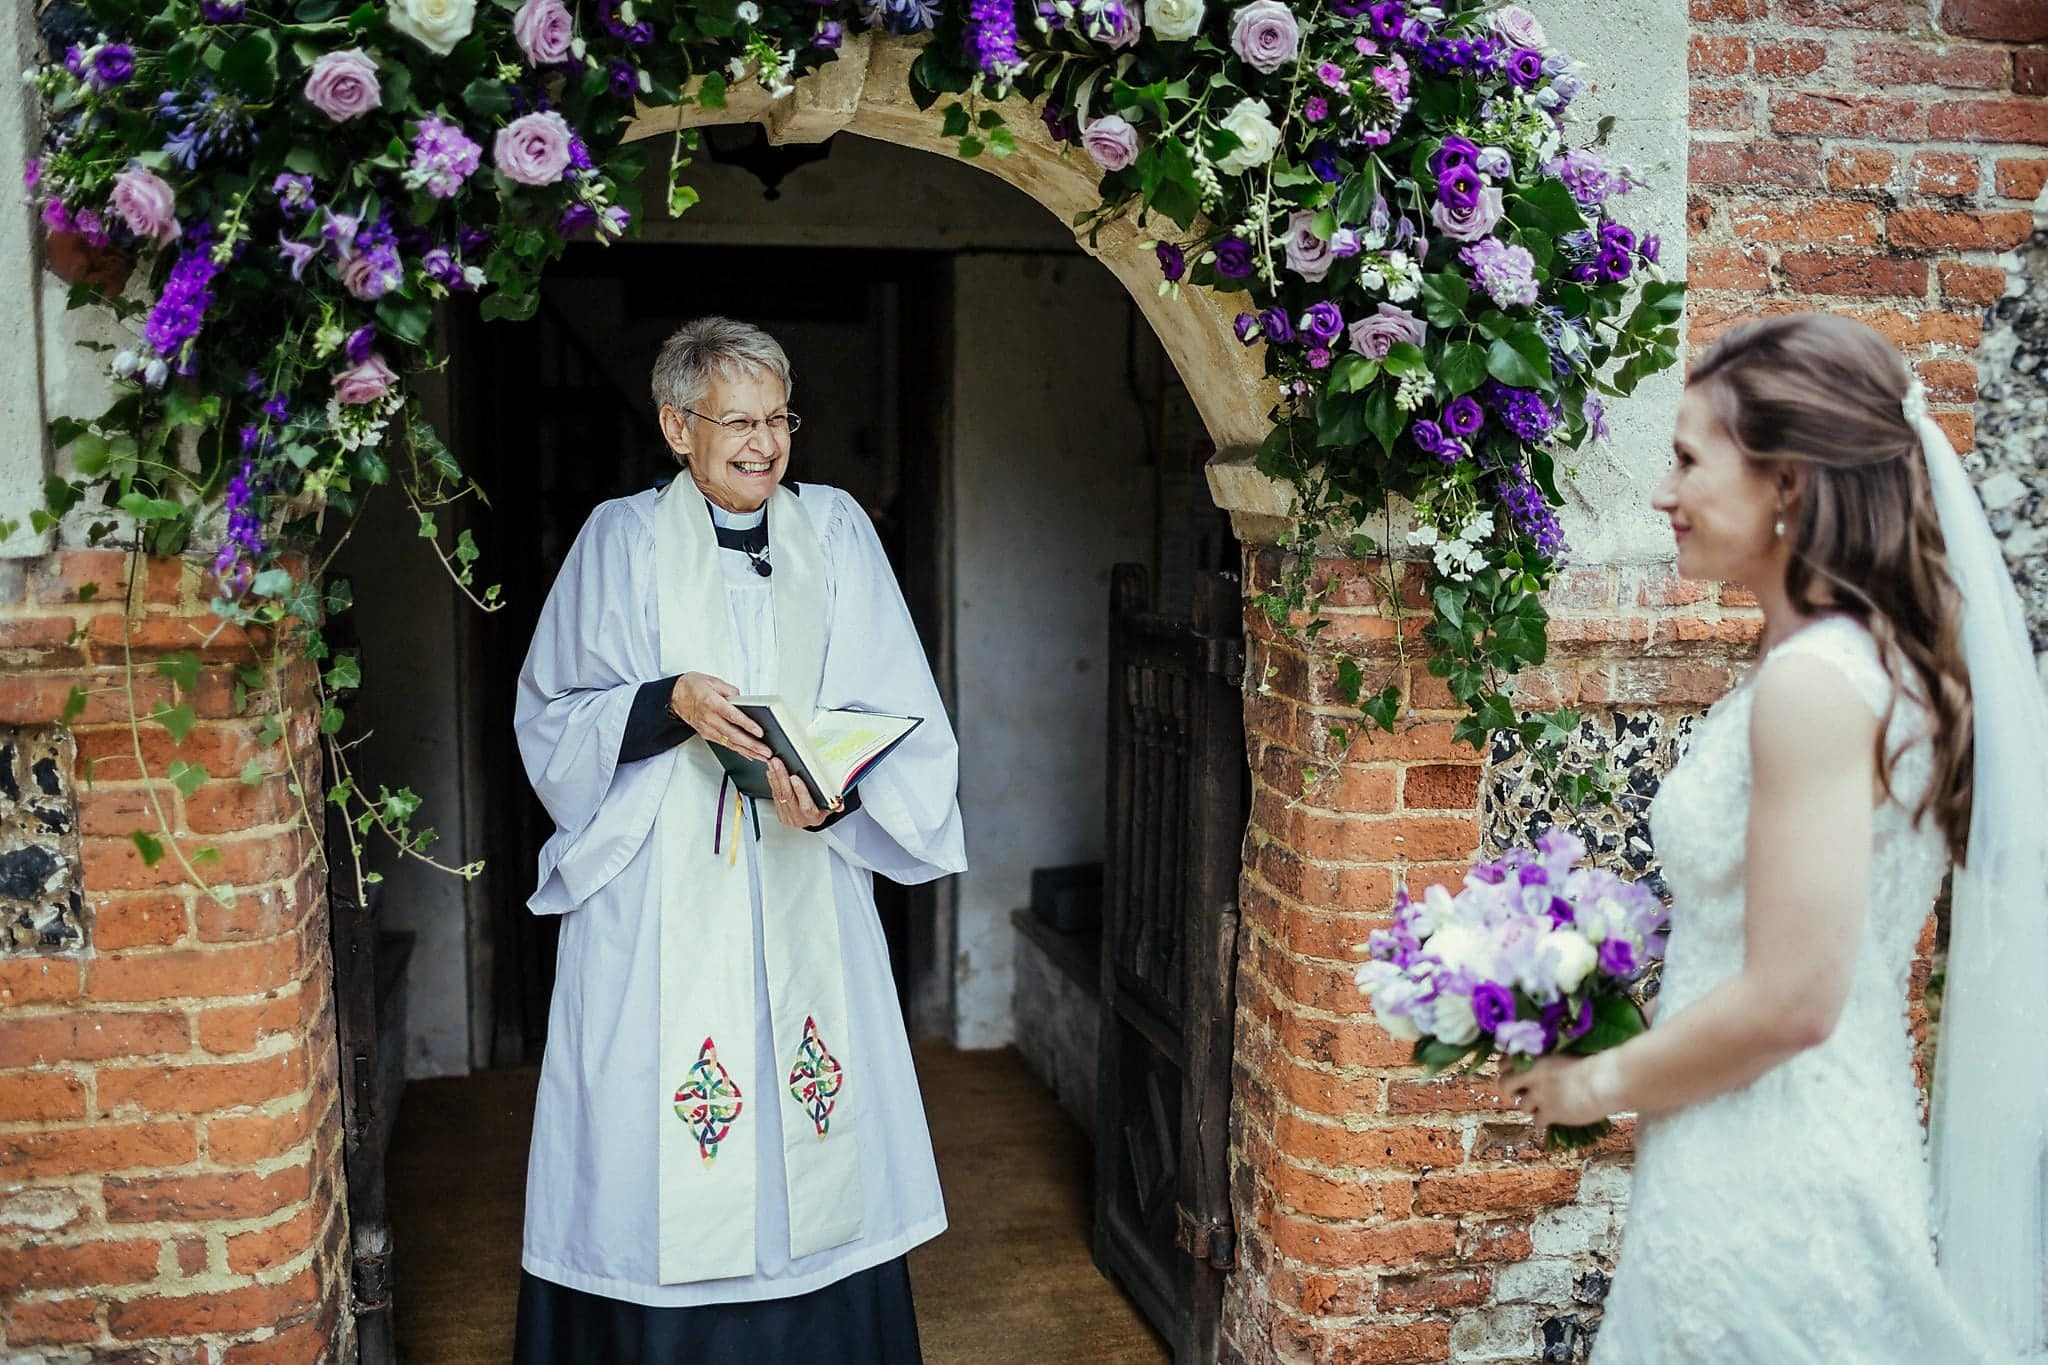 Documentary wedding photo of the vicar happily greeting the smiling bride